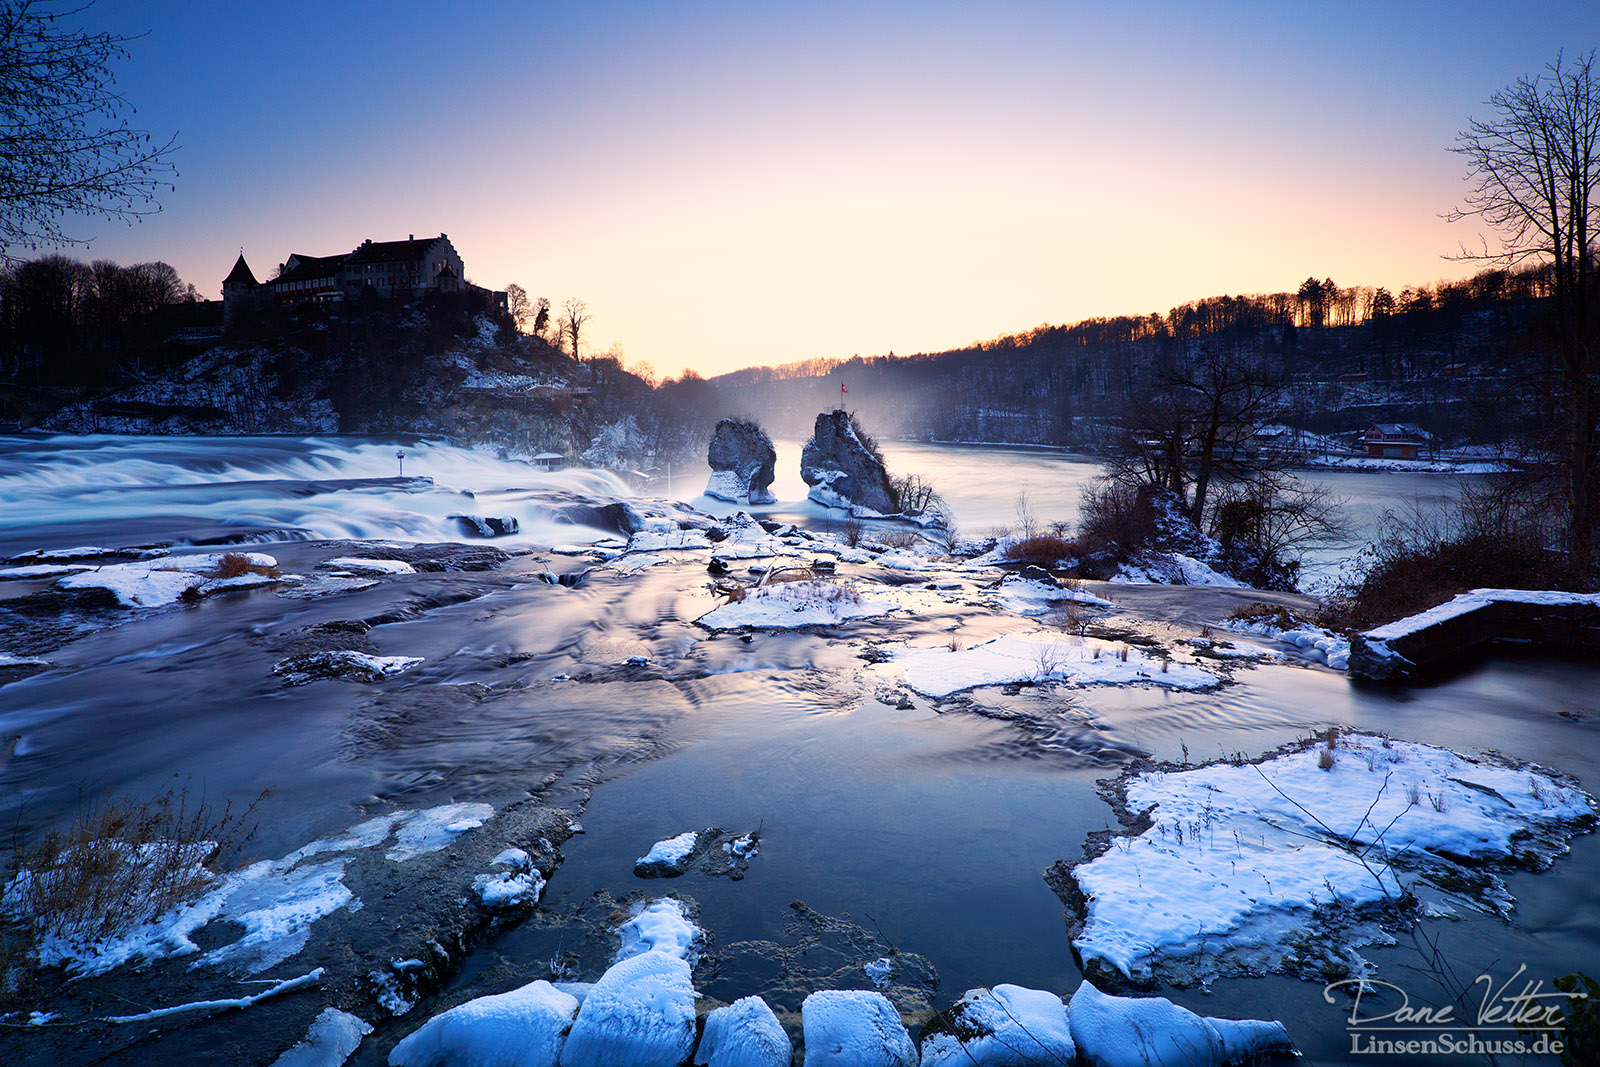 The icy Rheinfall by LinsenSchuss